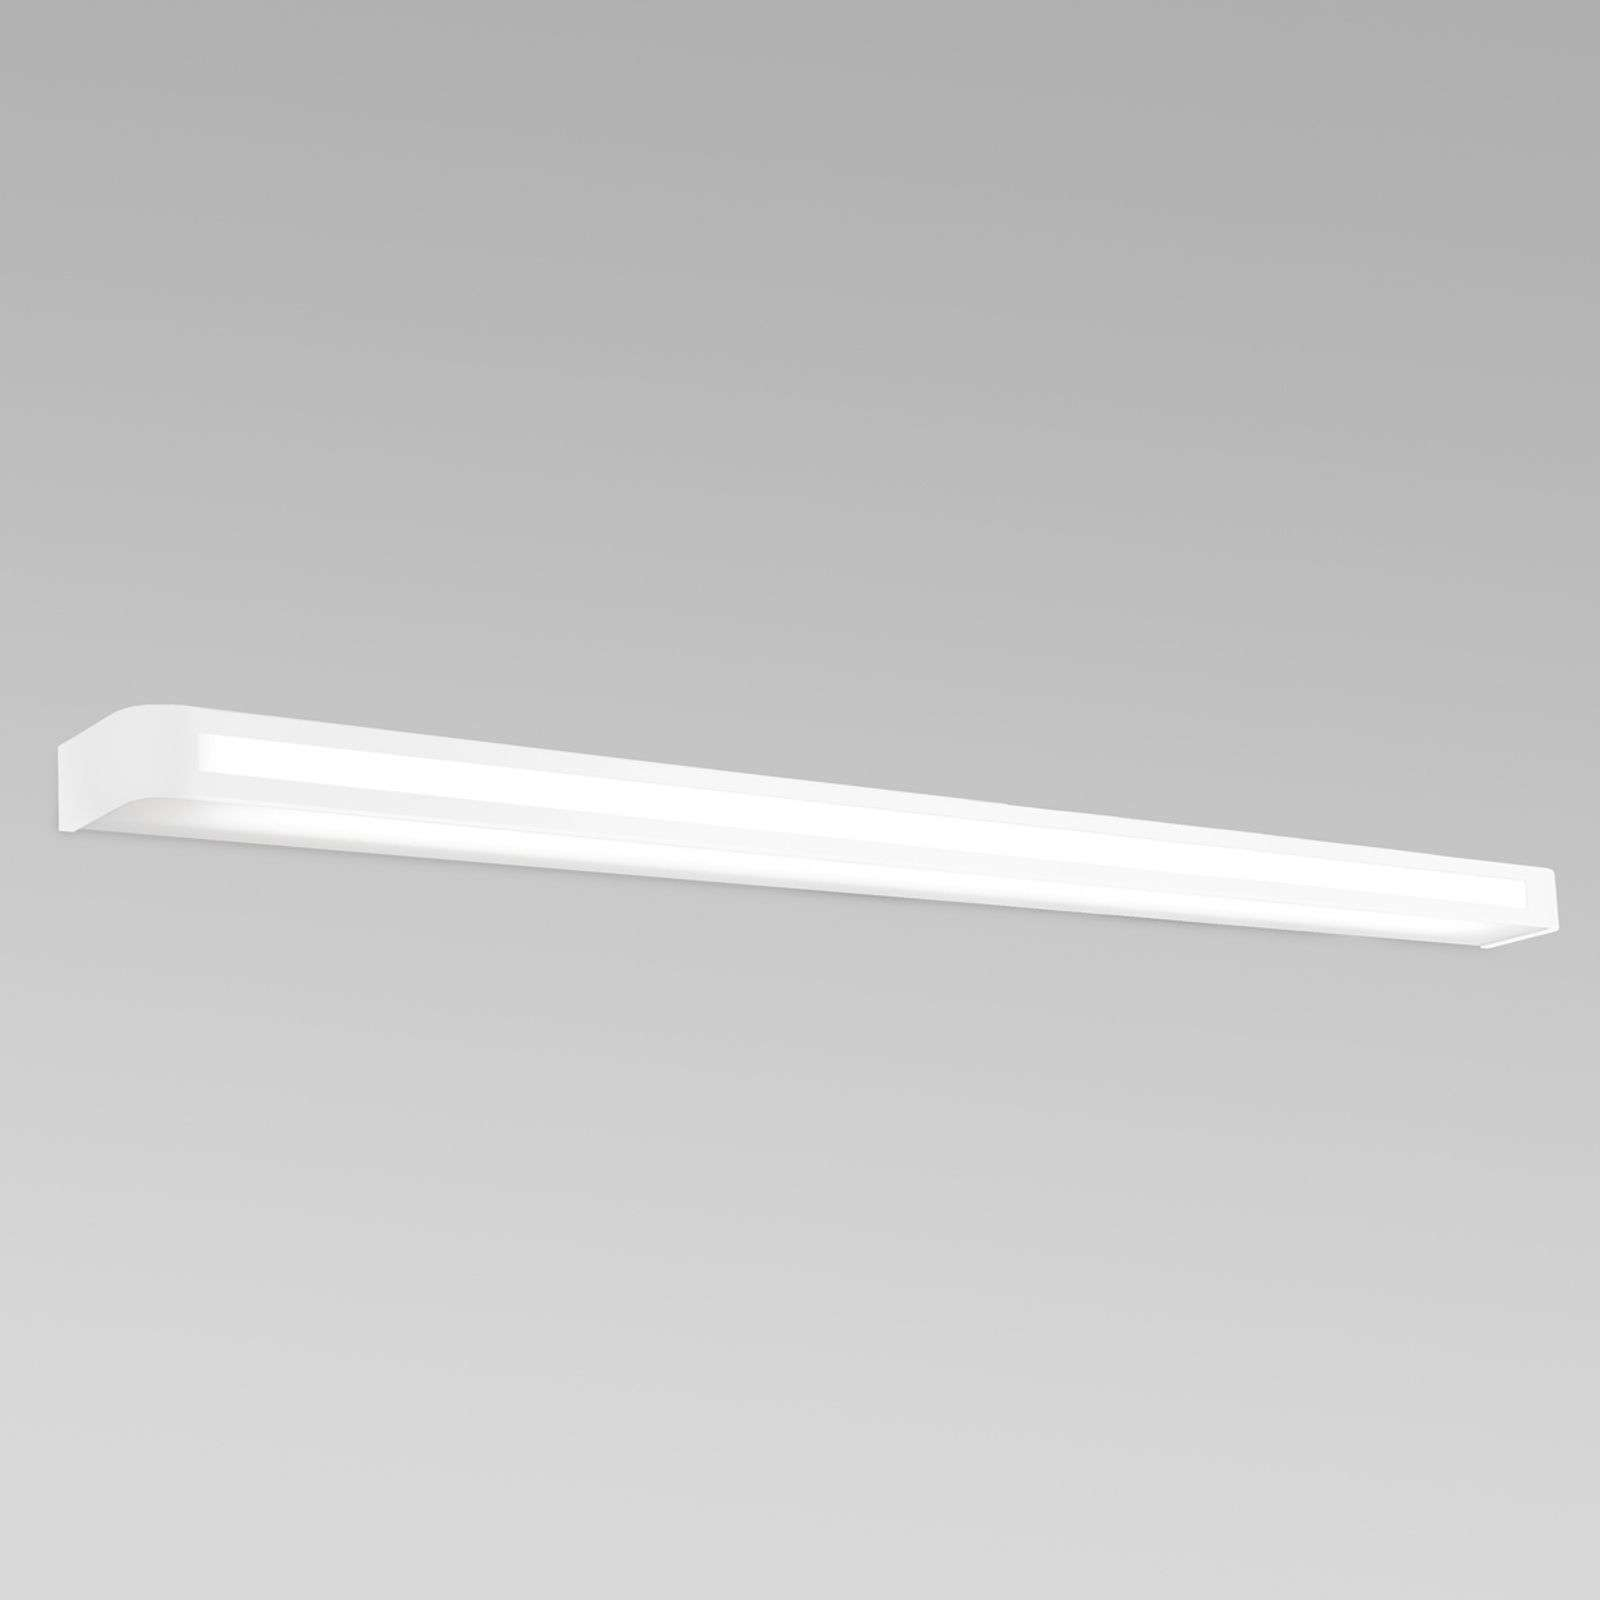 Applique LED Arcos intemporelle, IP20 120cm, blanc